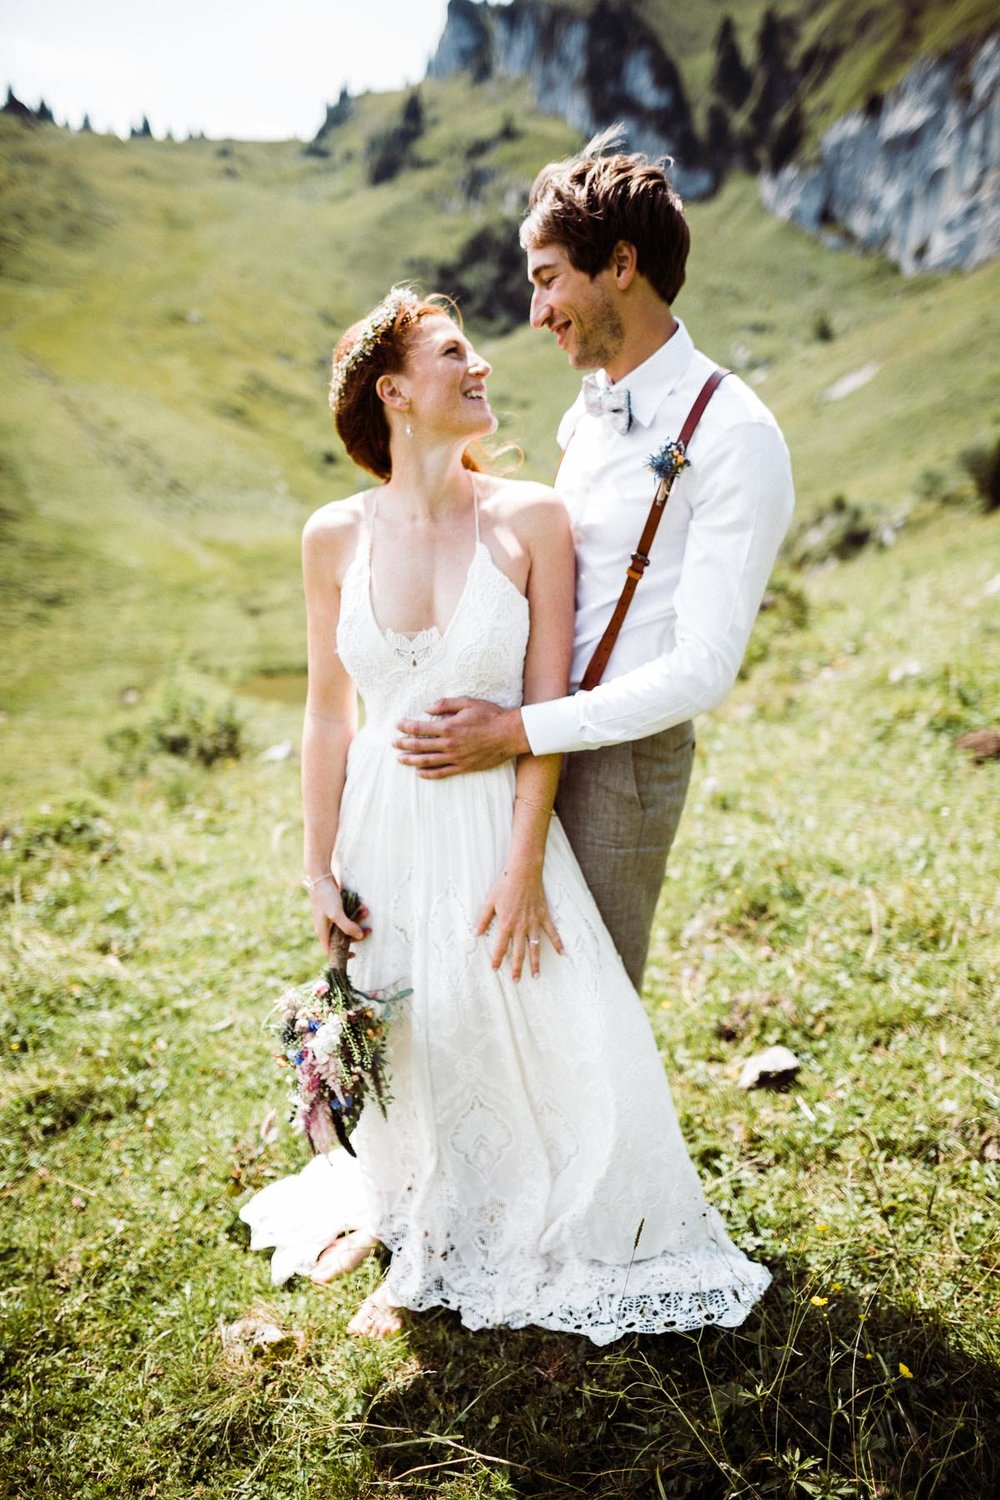 bavaria-wedding-bavarian-alps-boho-mountain-wedding-germany-bavaria-wedding-photographer (66).jpg